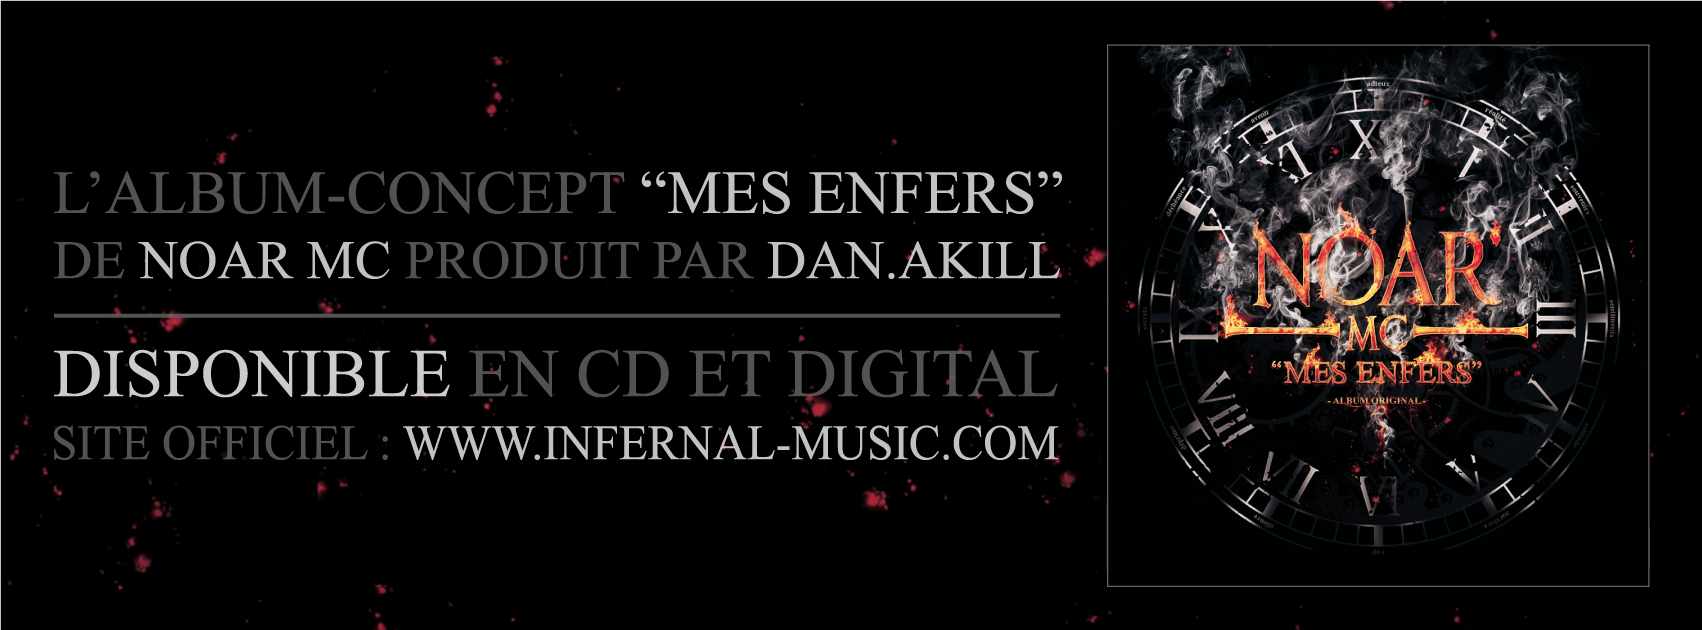 """Mes enfers"", l'album concept de Noar Mc disponible en CD & Digital"